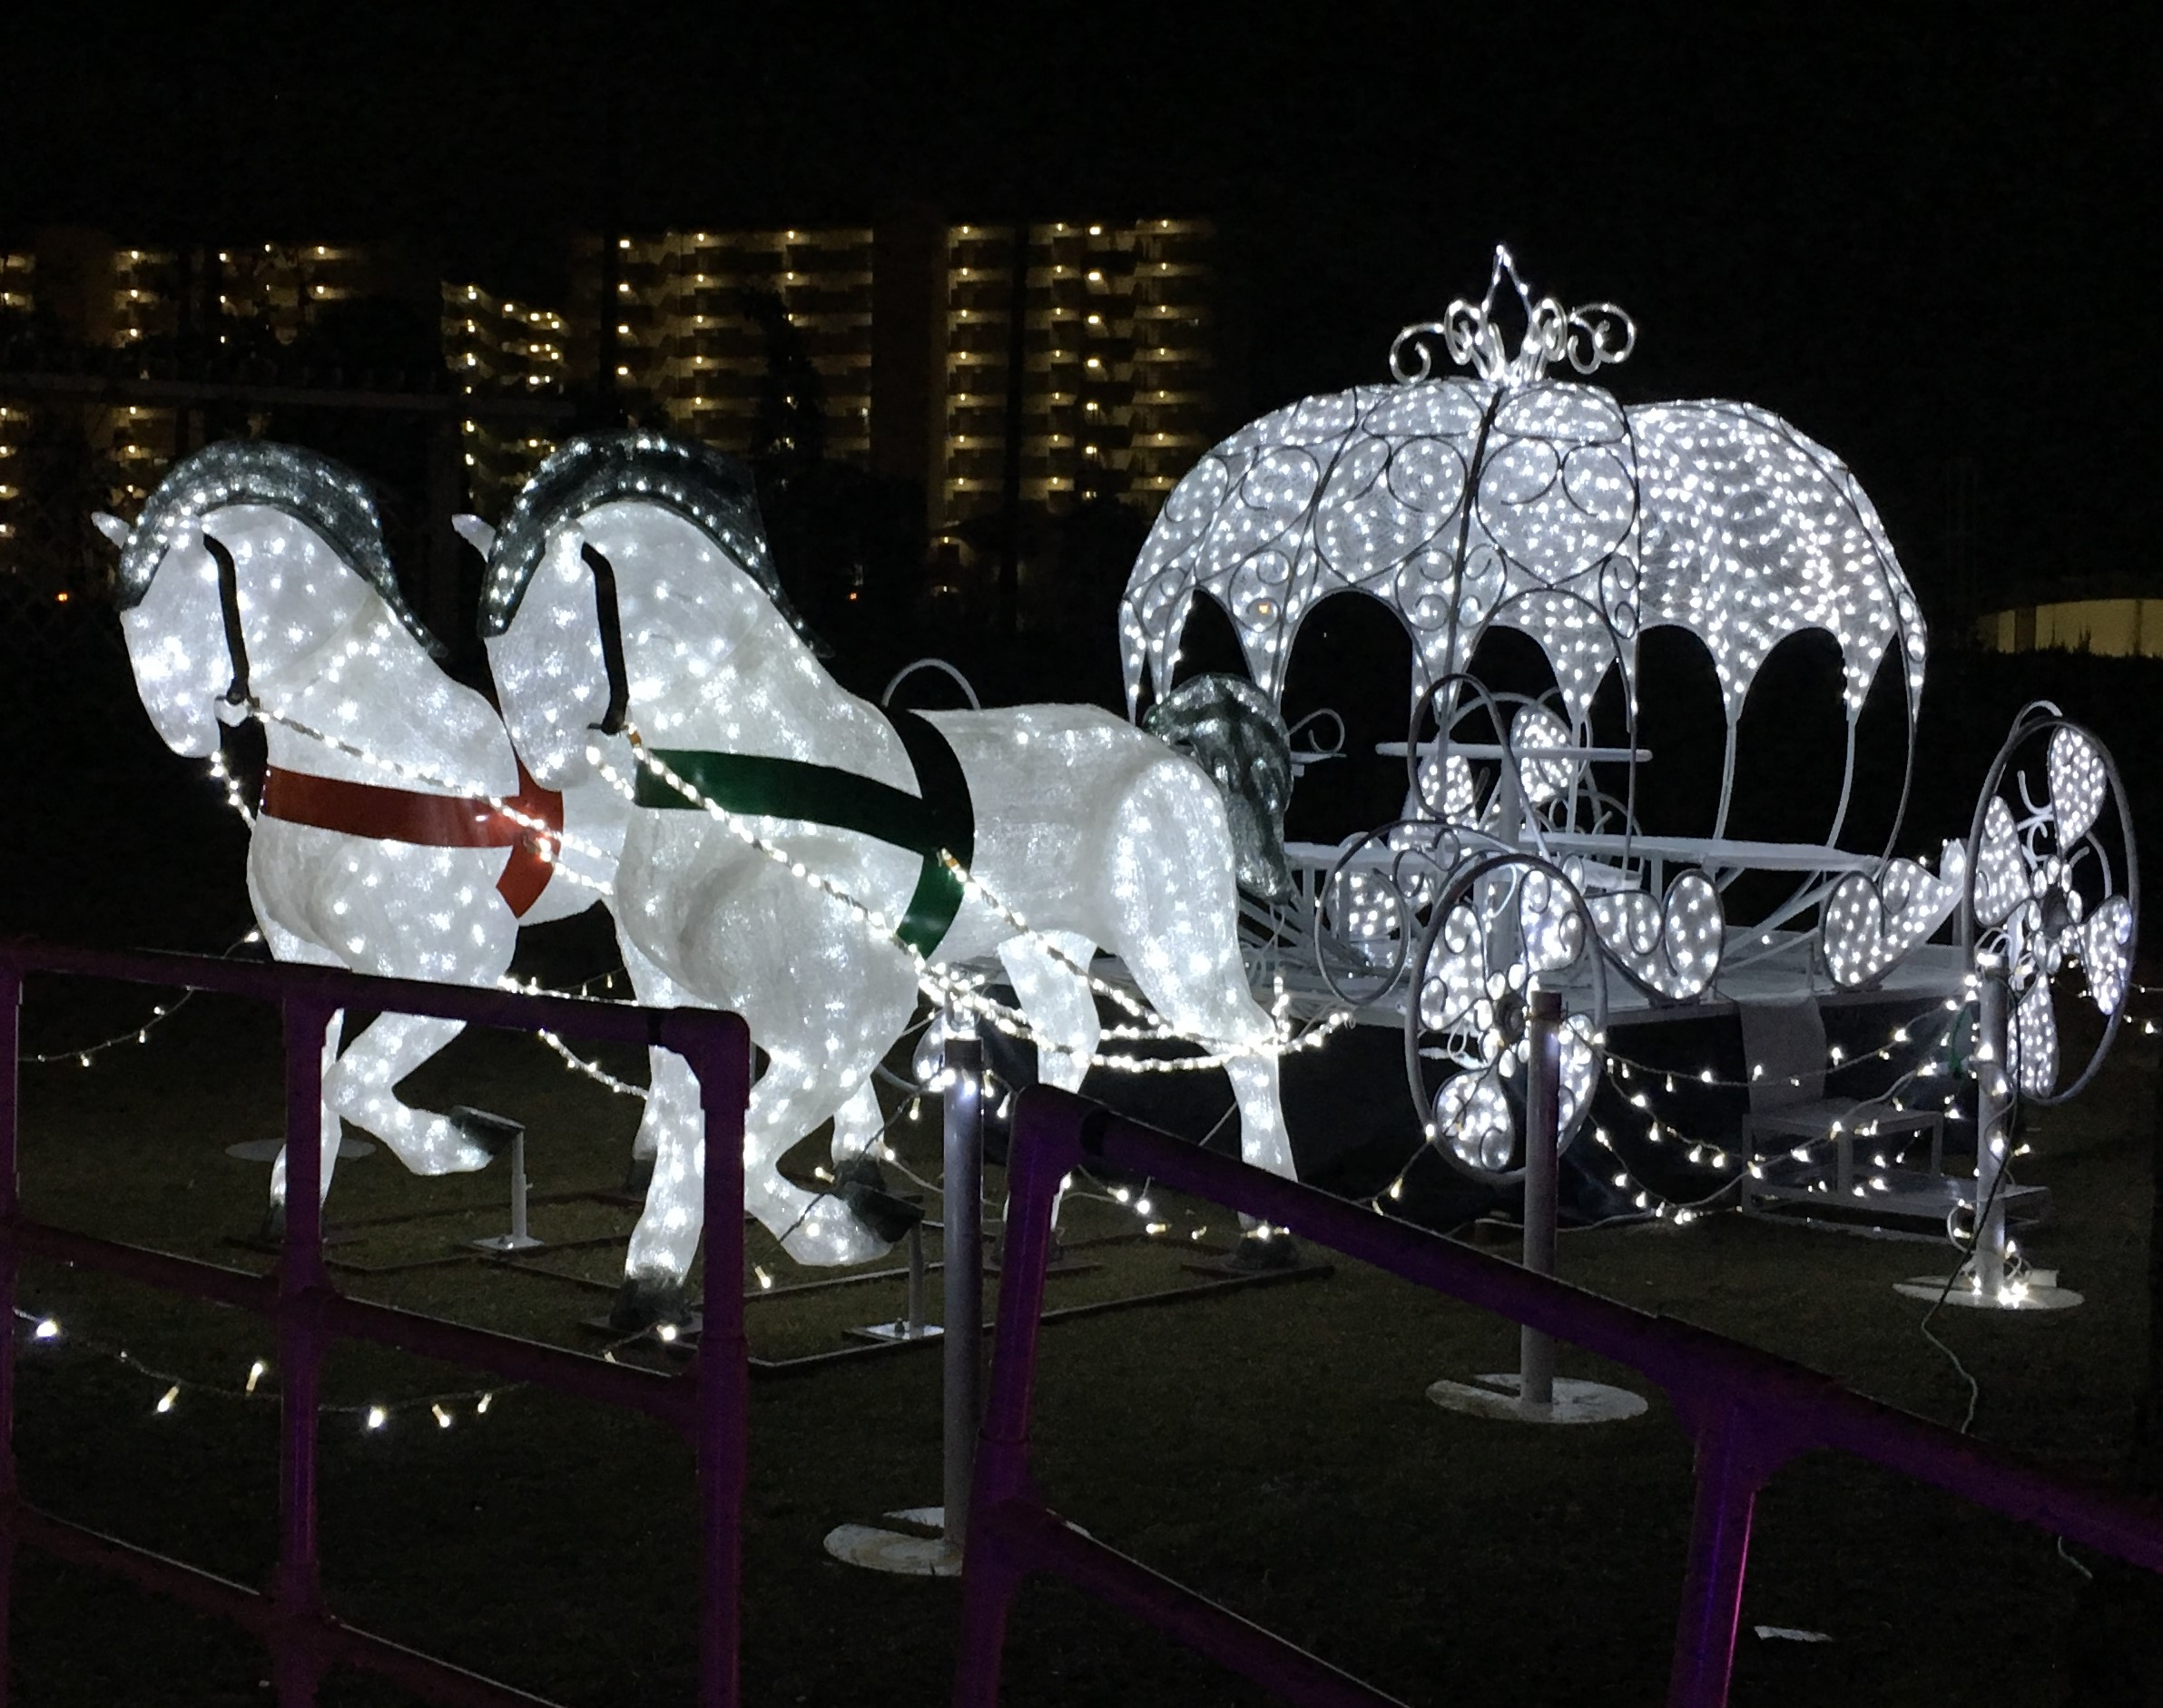 white illumination of a horse and carriage